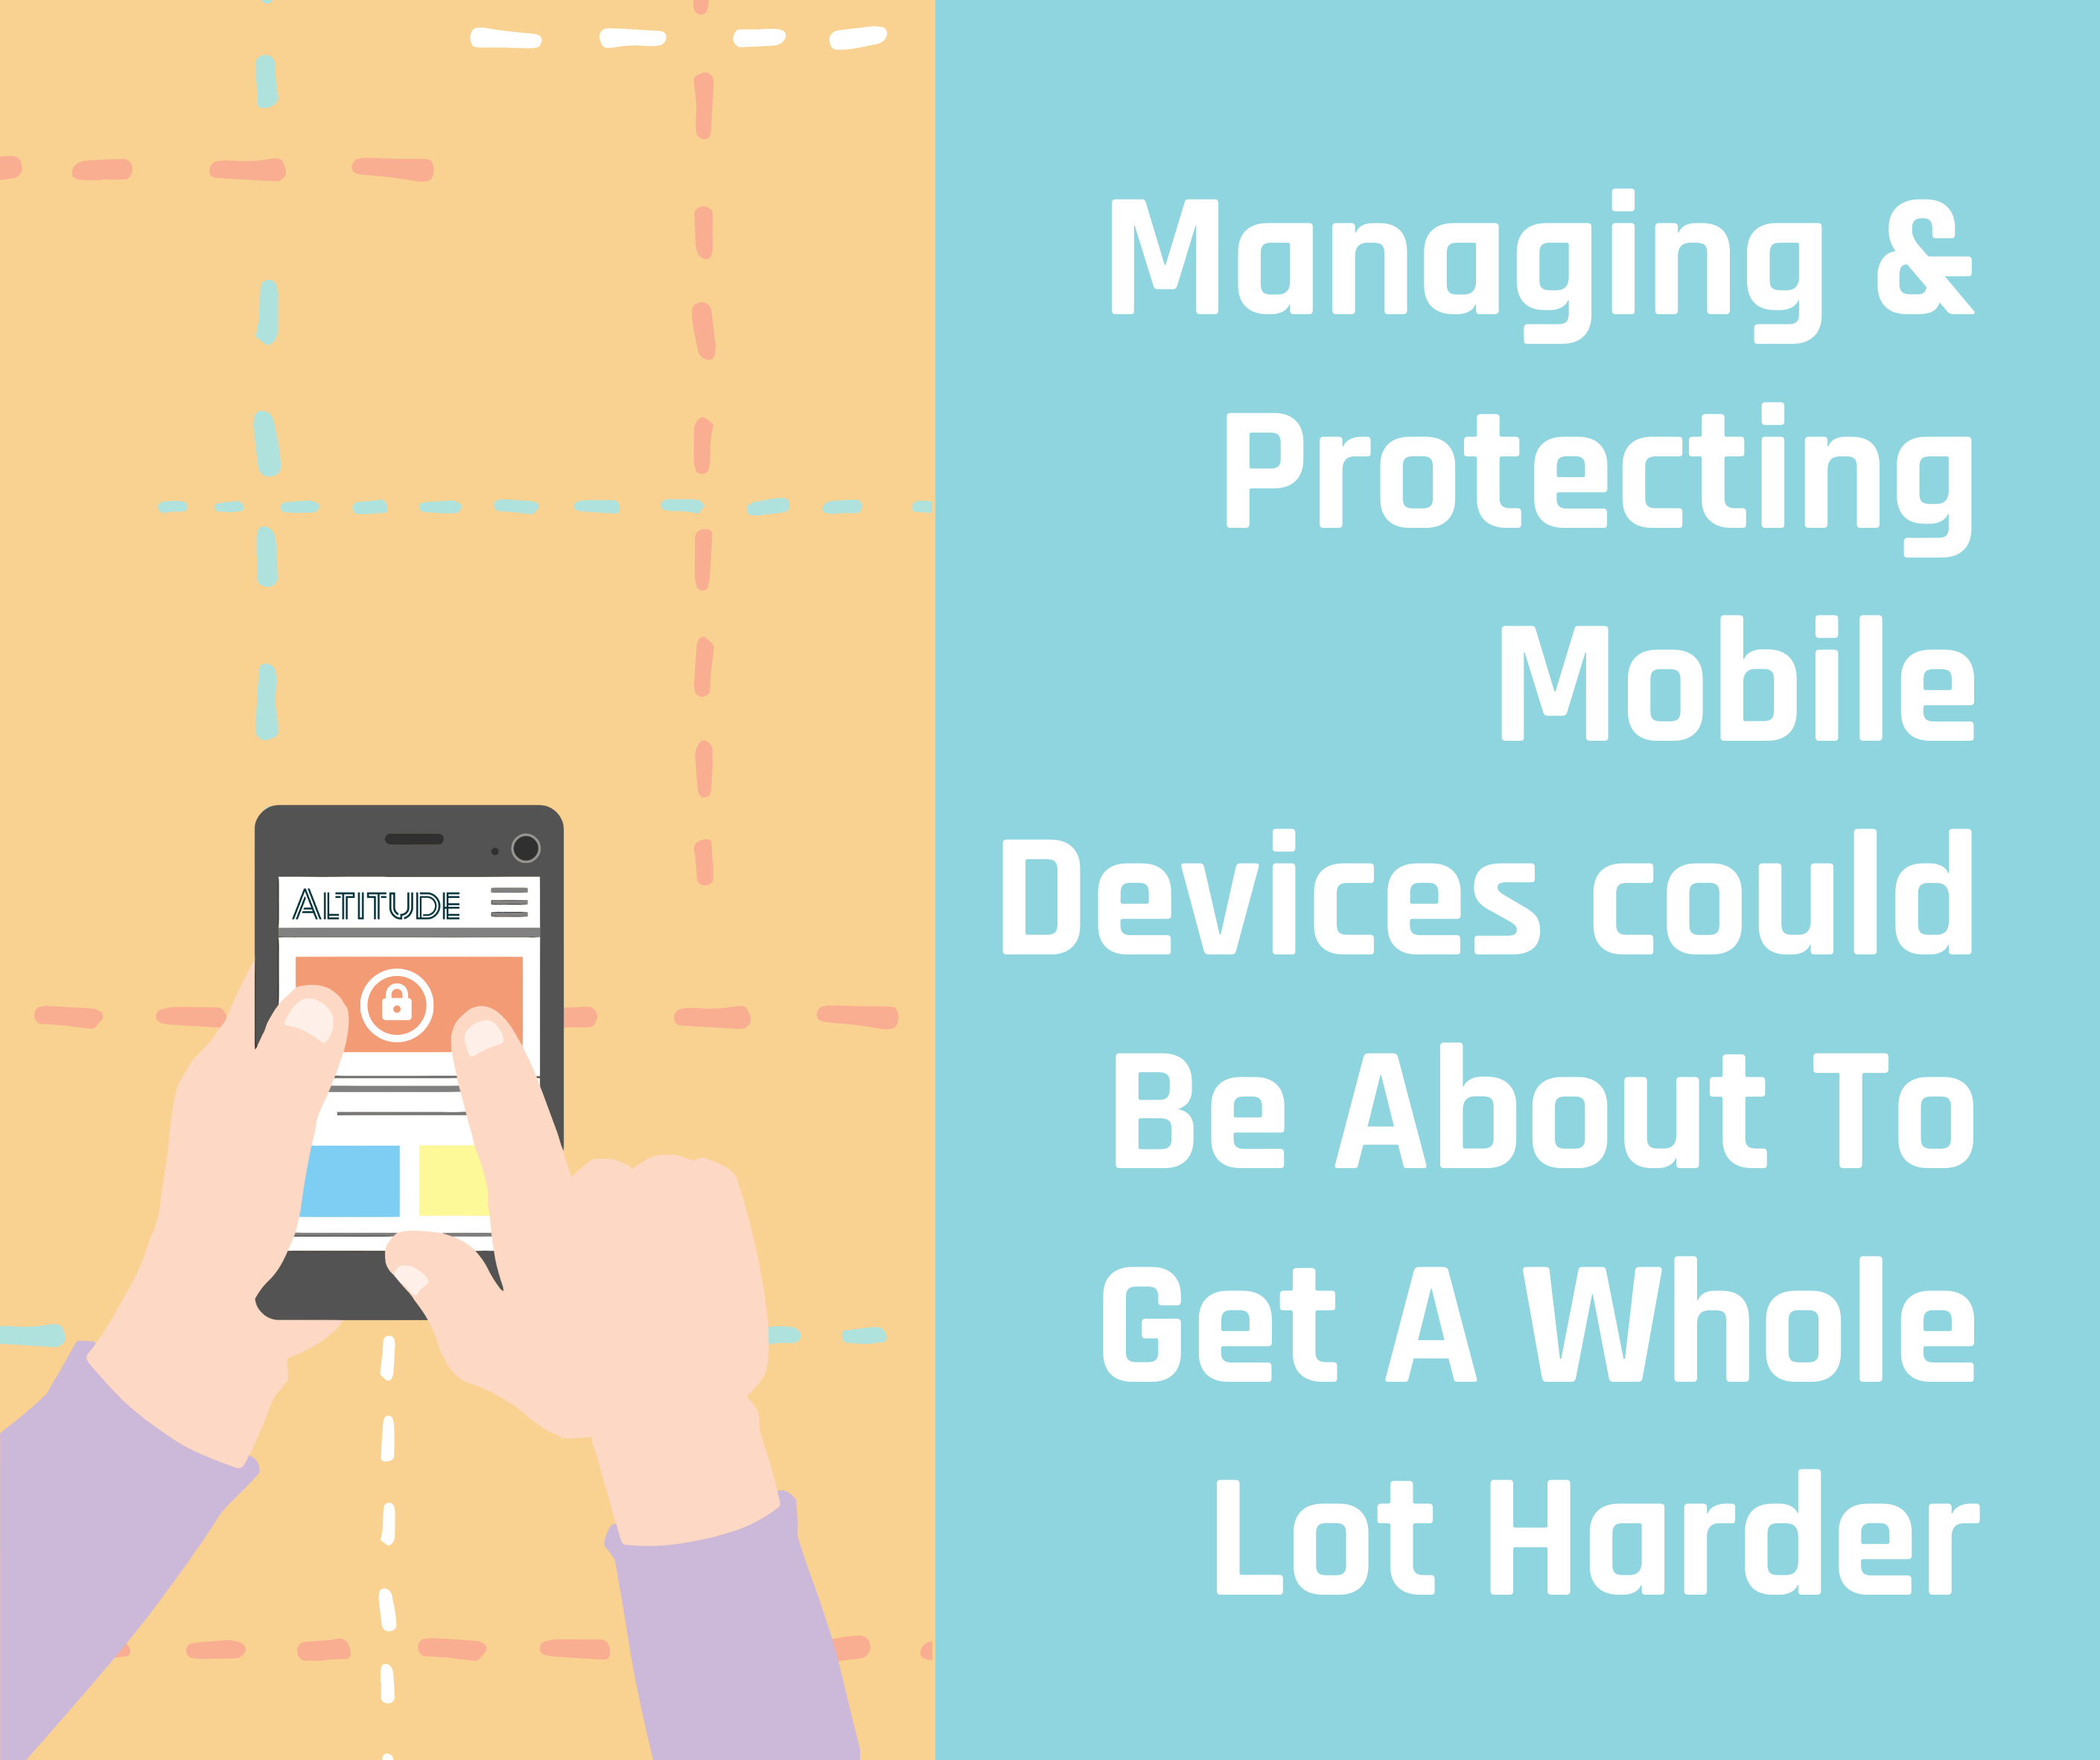 Managing & Protecting Mobile Devices could be about to get a whole lot harder